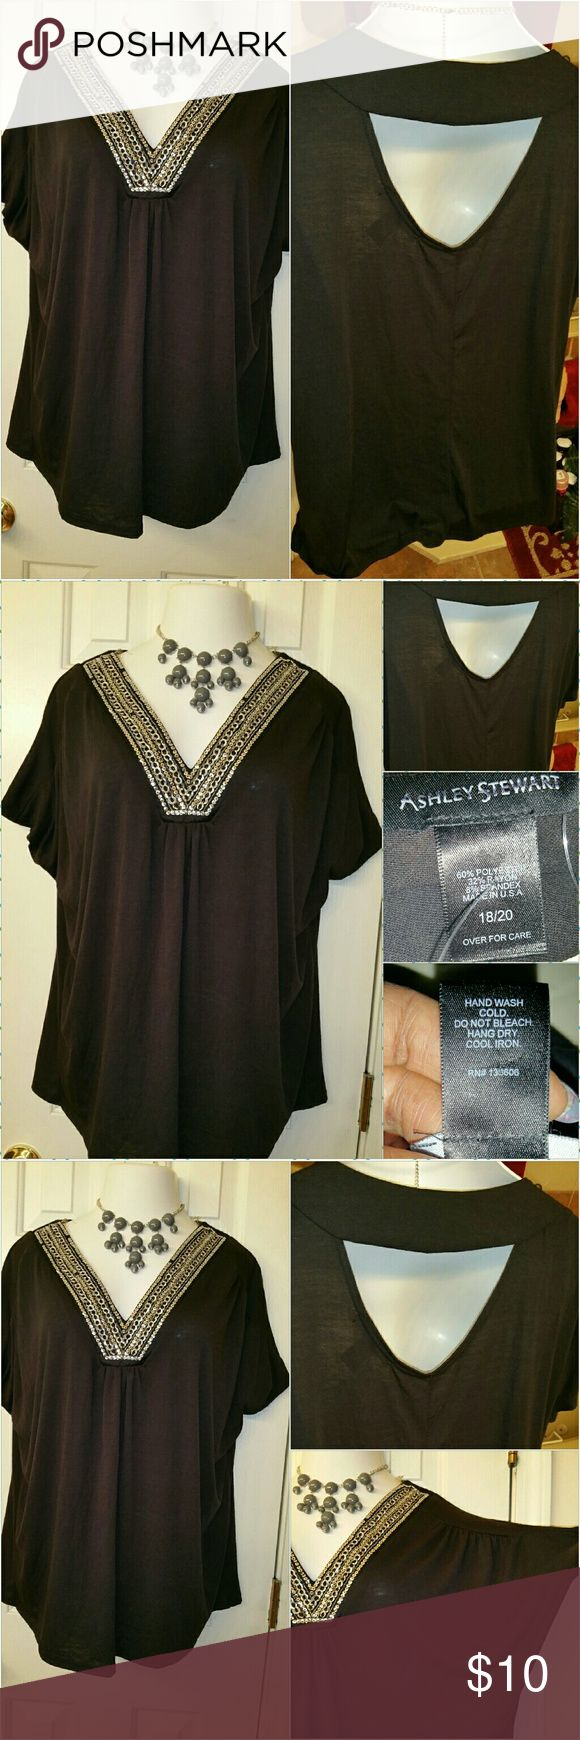 SOLD Ashley Stewart women plus size embellished top. This top is so cute  it has semi open back  and a  embellished V-neck  with gold and silver jewels. In addition,  I bought this top from an outlet retail store named factors connect, also if you take a look at the Jewels on the V-neck,  their are a few missing, which was bought like this..other than that it has fashionable bat sleeve, and overall it a very nice top. Size 18/20 Ashley Stewart  Tops Tunics